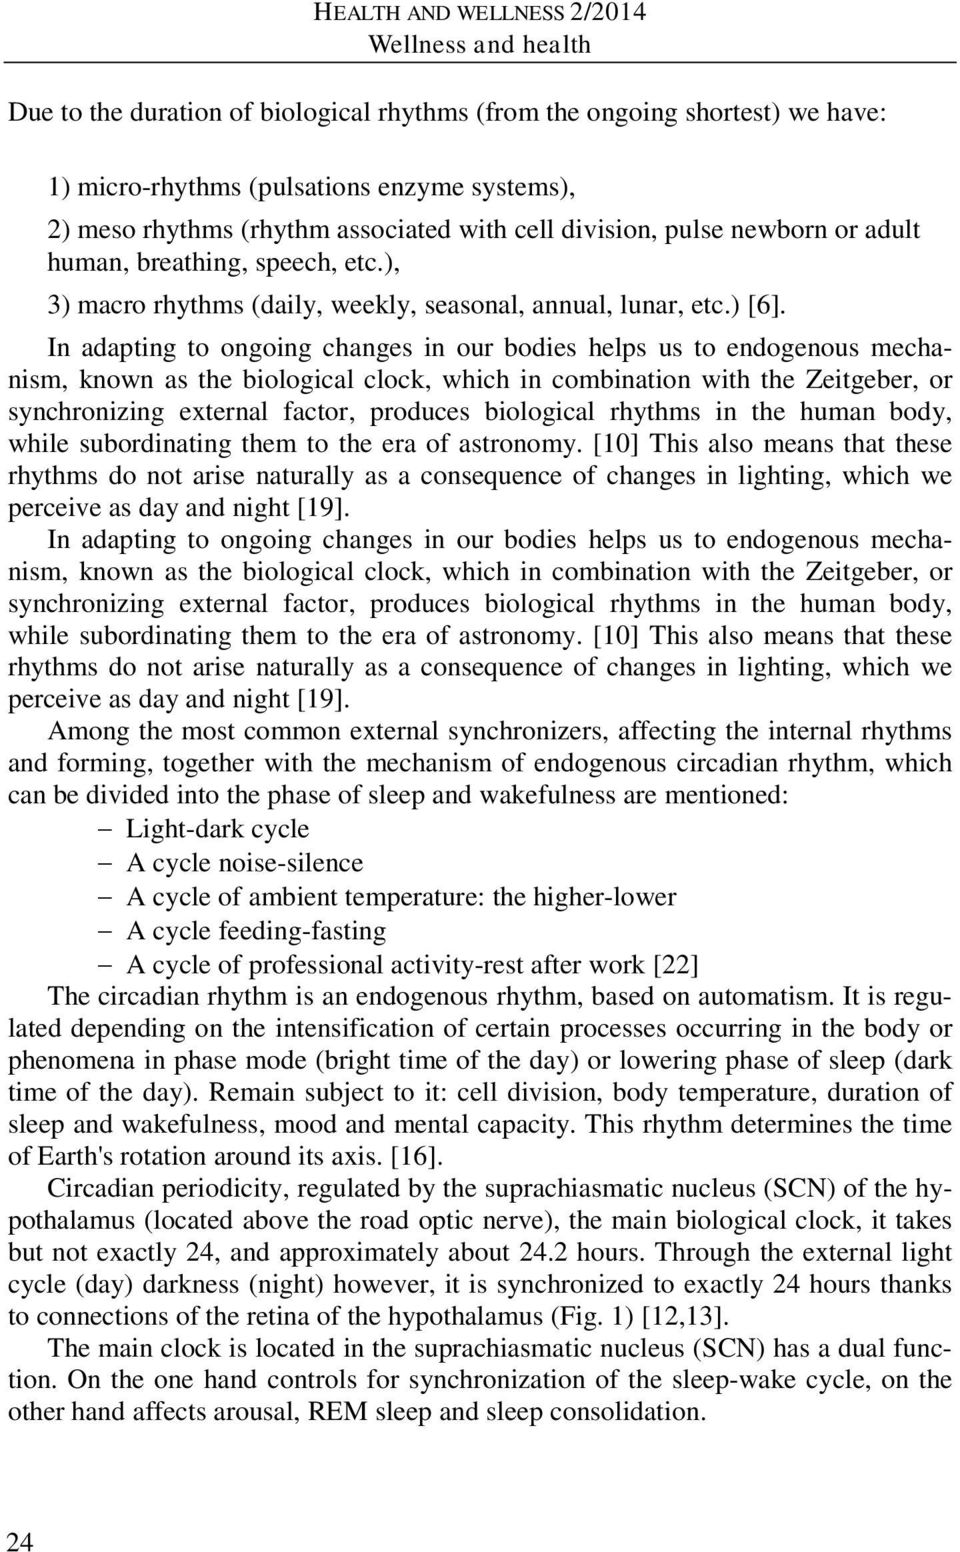 In adapting to ongoing changes in our bodies helps us to endogenous mechanism, known as the biological clock, which in combination with the Zeitgeber, or synchronizing external factor, produces